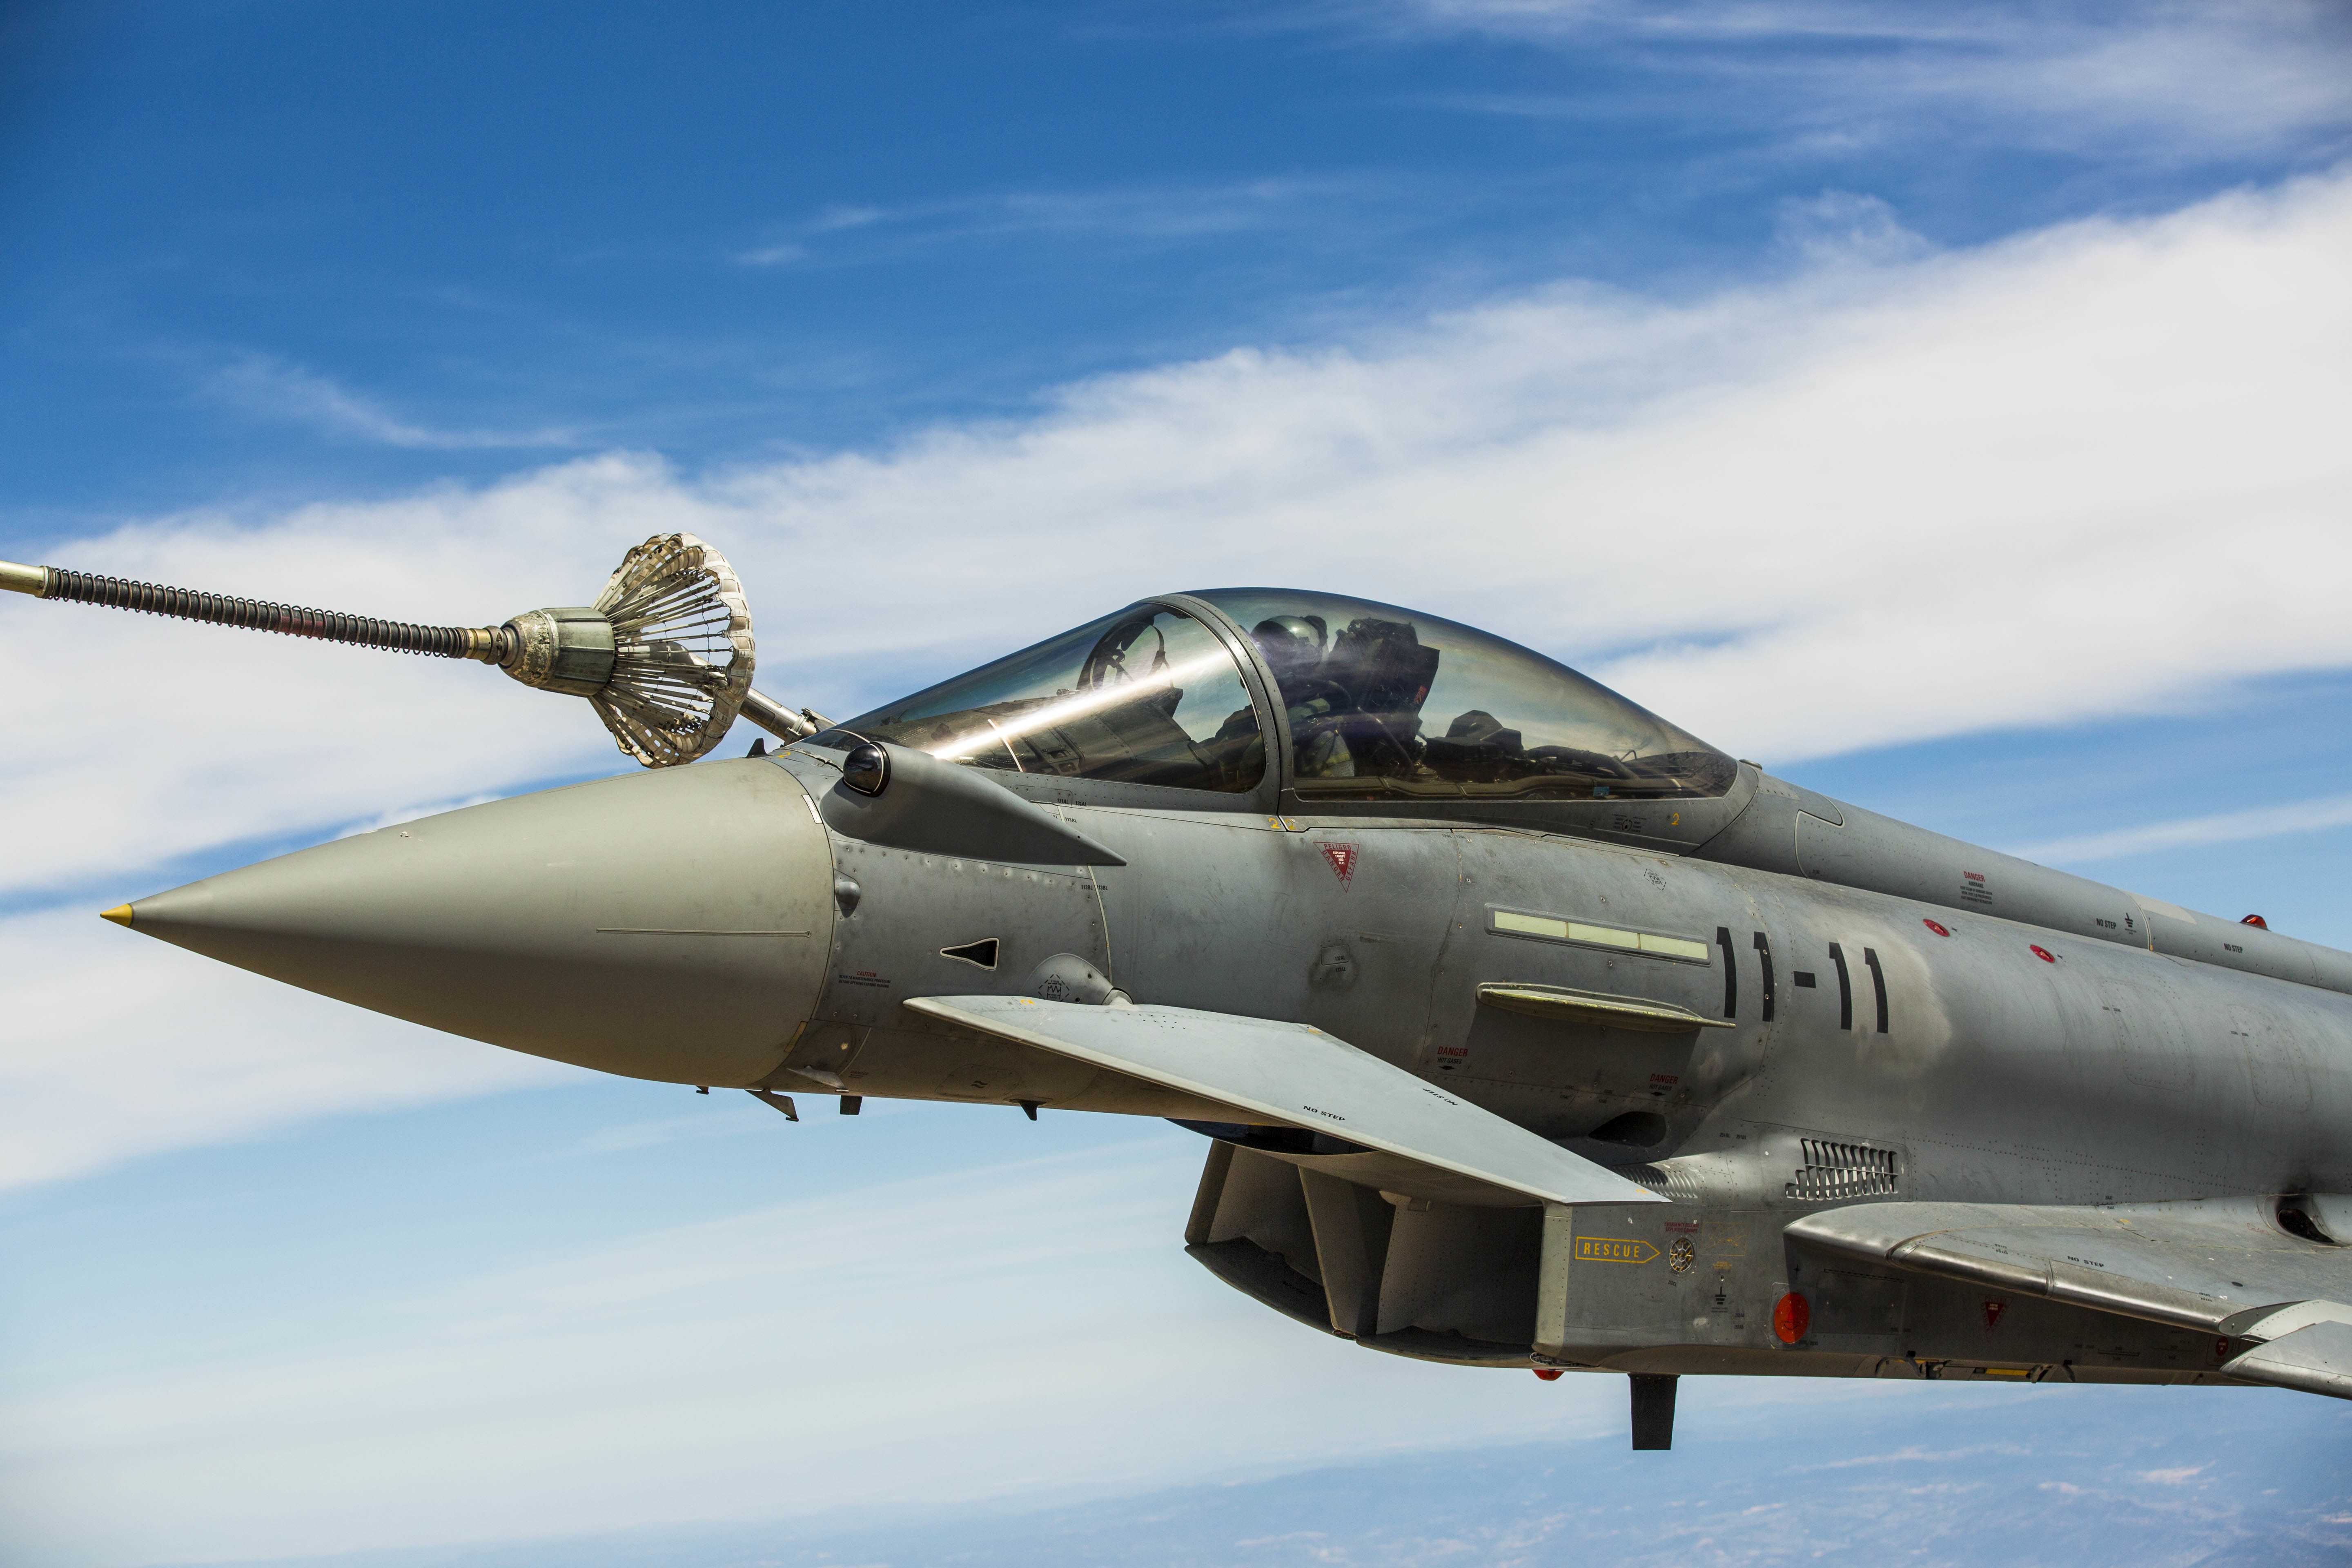 A Eurofighter Typhoon with the Spanish Air Force based out of Morón Air Base, Spain, refuels from a KC-130J Hercules, a first for the Marines from Special-Purpose Marine Air-Ground Task Force Crisis Response-Africa, Aug. 13, in Spain. The U.S. and Spain have been fostering one of the closest defense partnerships around the world for more than 60 years. (U.S. Marine Corps photo by Staff Sgt. Vitaliy Rusavskiy/Released)